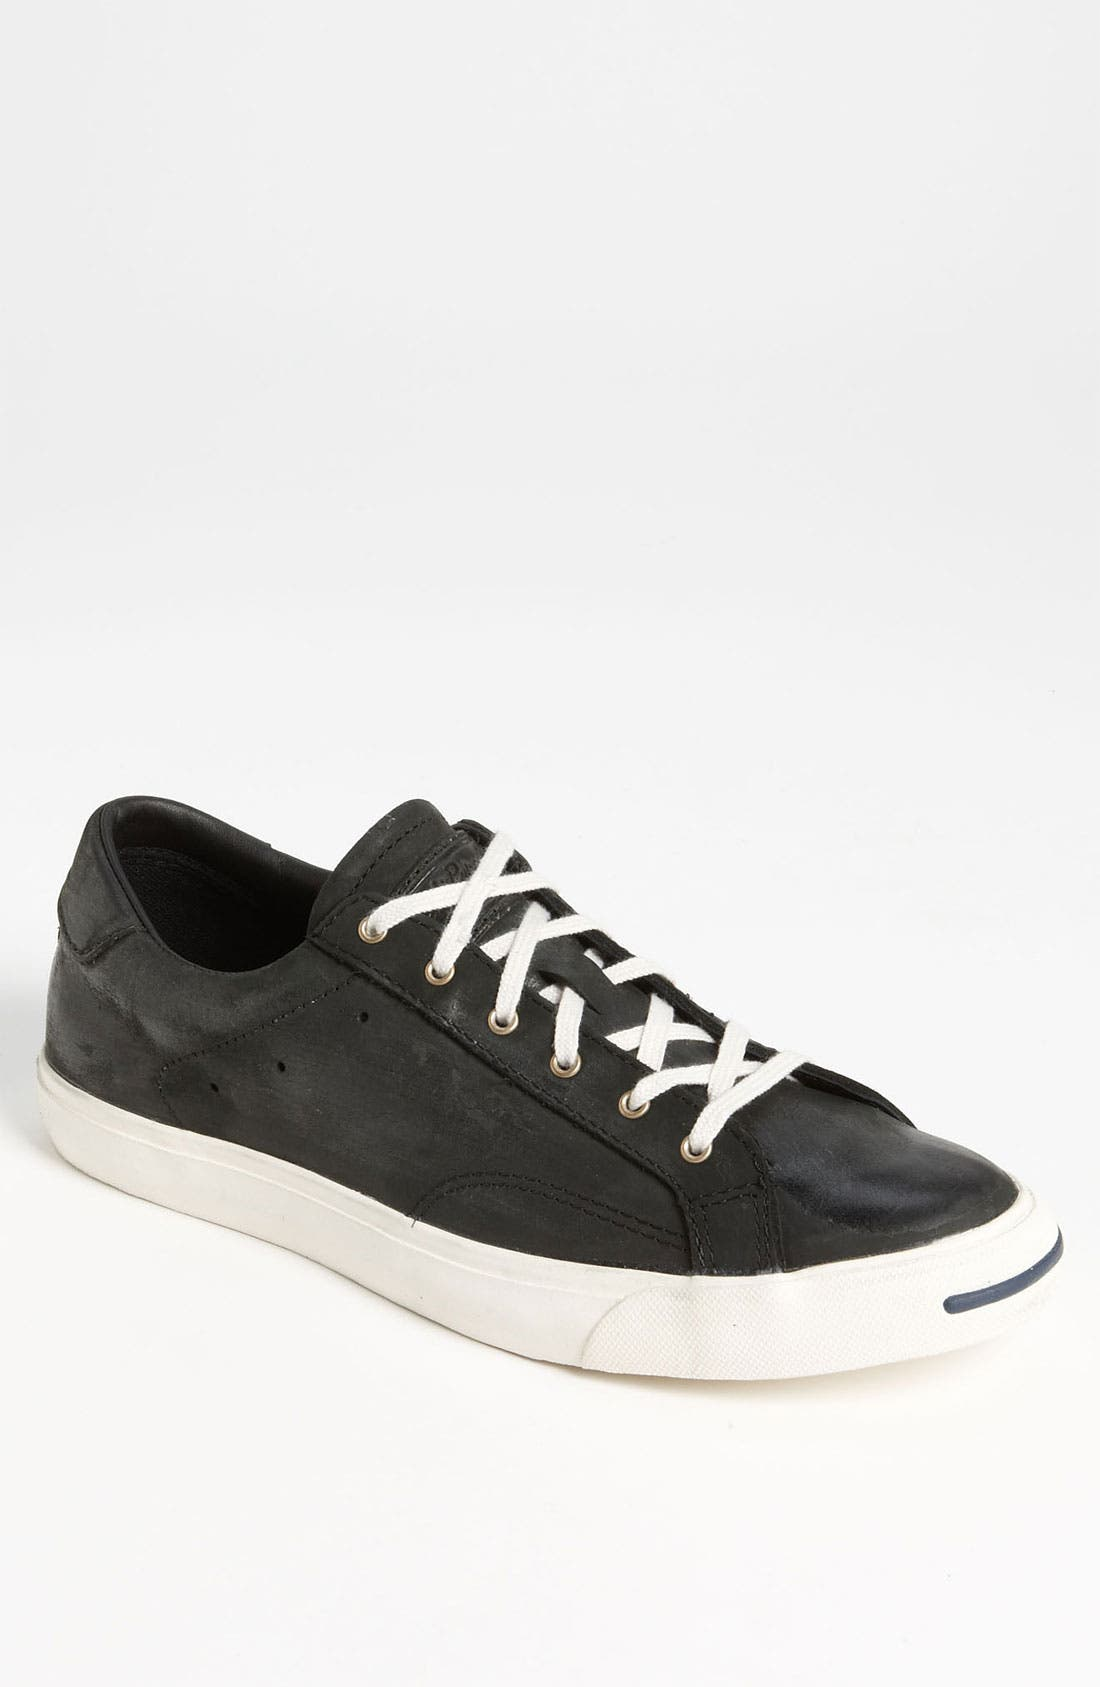 Main Image - Converse 'Jack Purcell - Peter' Sneaker (Unisex)